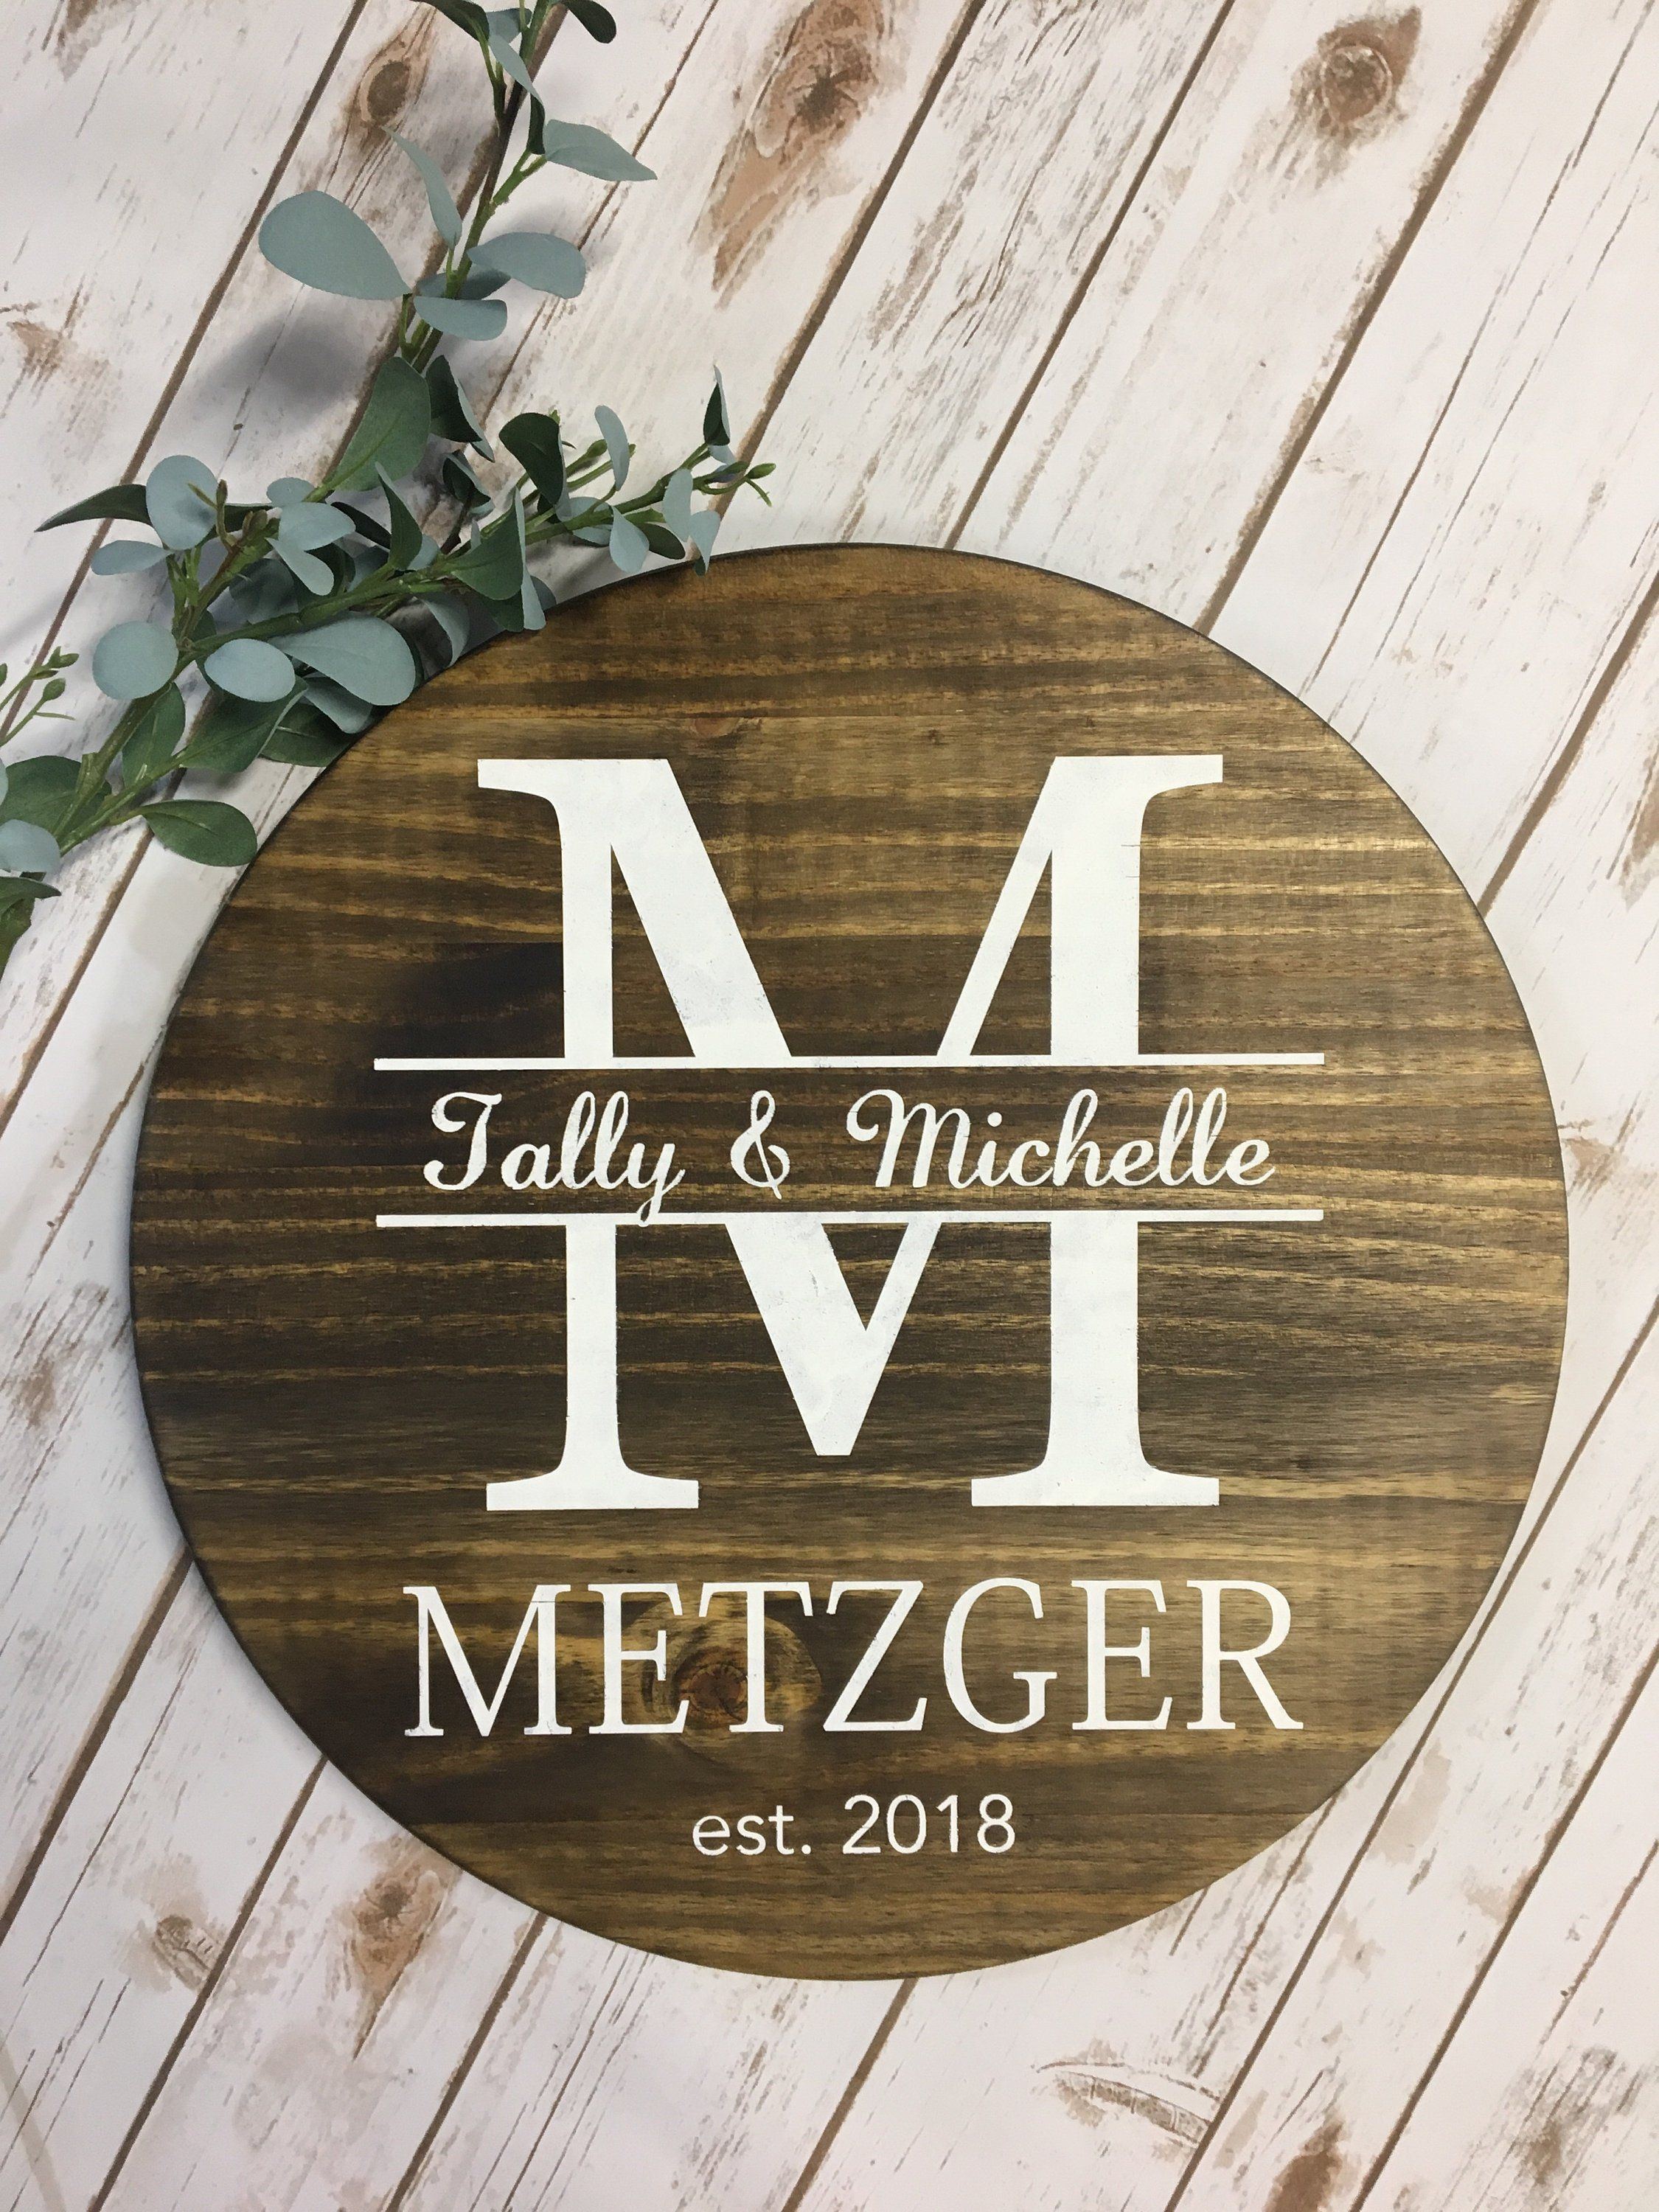 Personalized Wooden Sign| Round Wood Sign | Last Name Sign | Wedding Gift | Personalized Wedding Gift for Newlyweds|Wedding Gifts for Couple #personalizedwedding